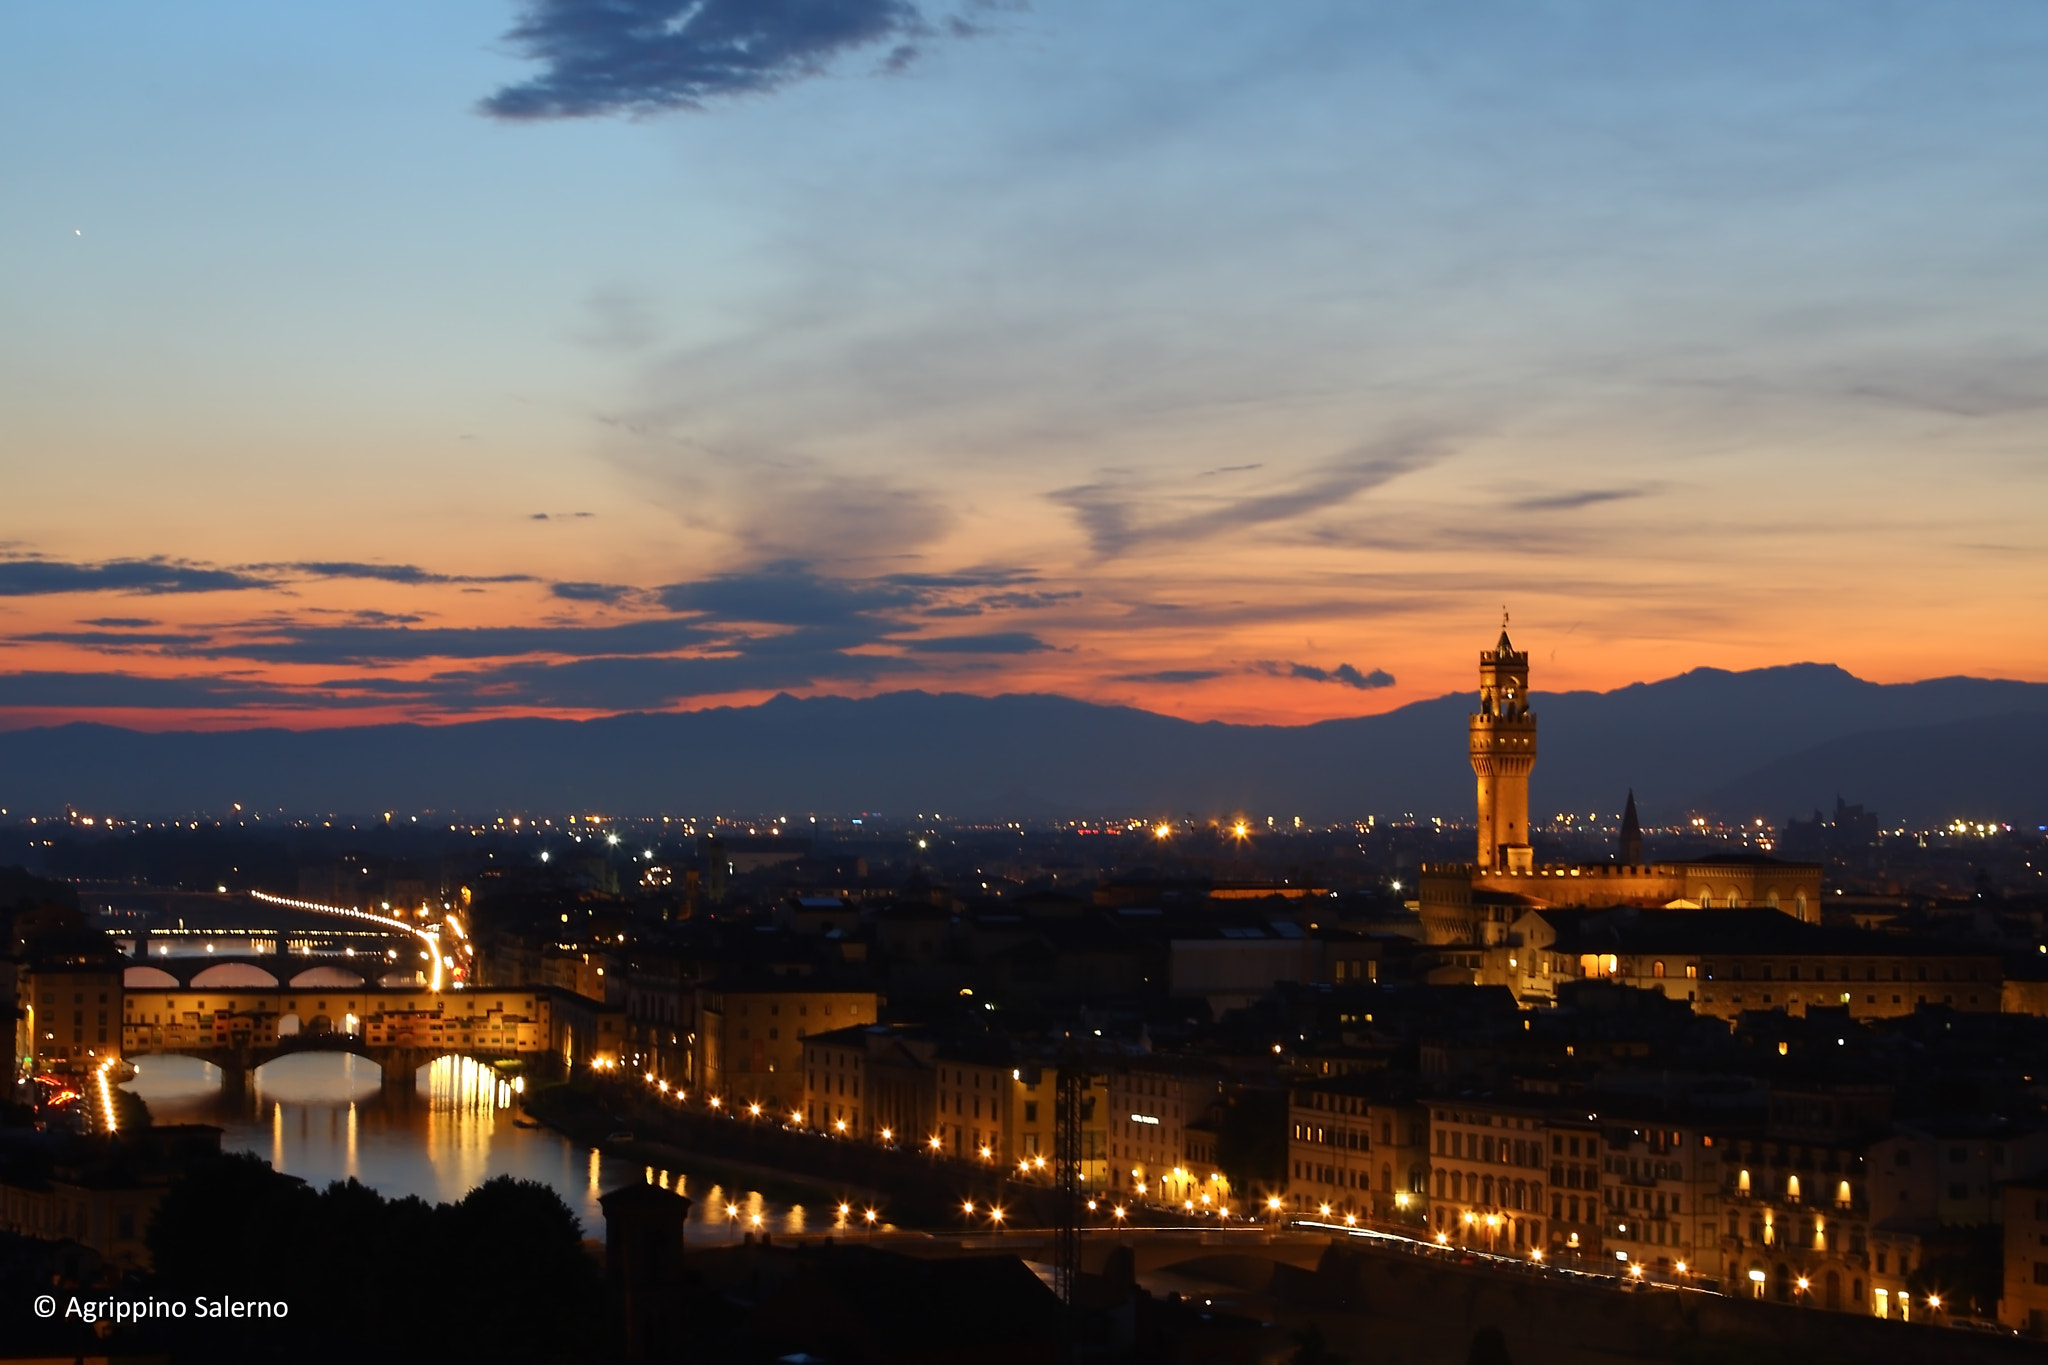 Photograph The blue hour by Agrippino Salerno on 500px